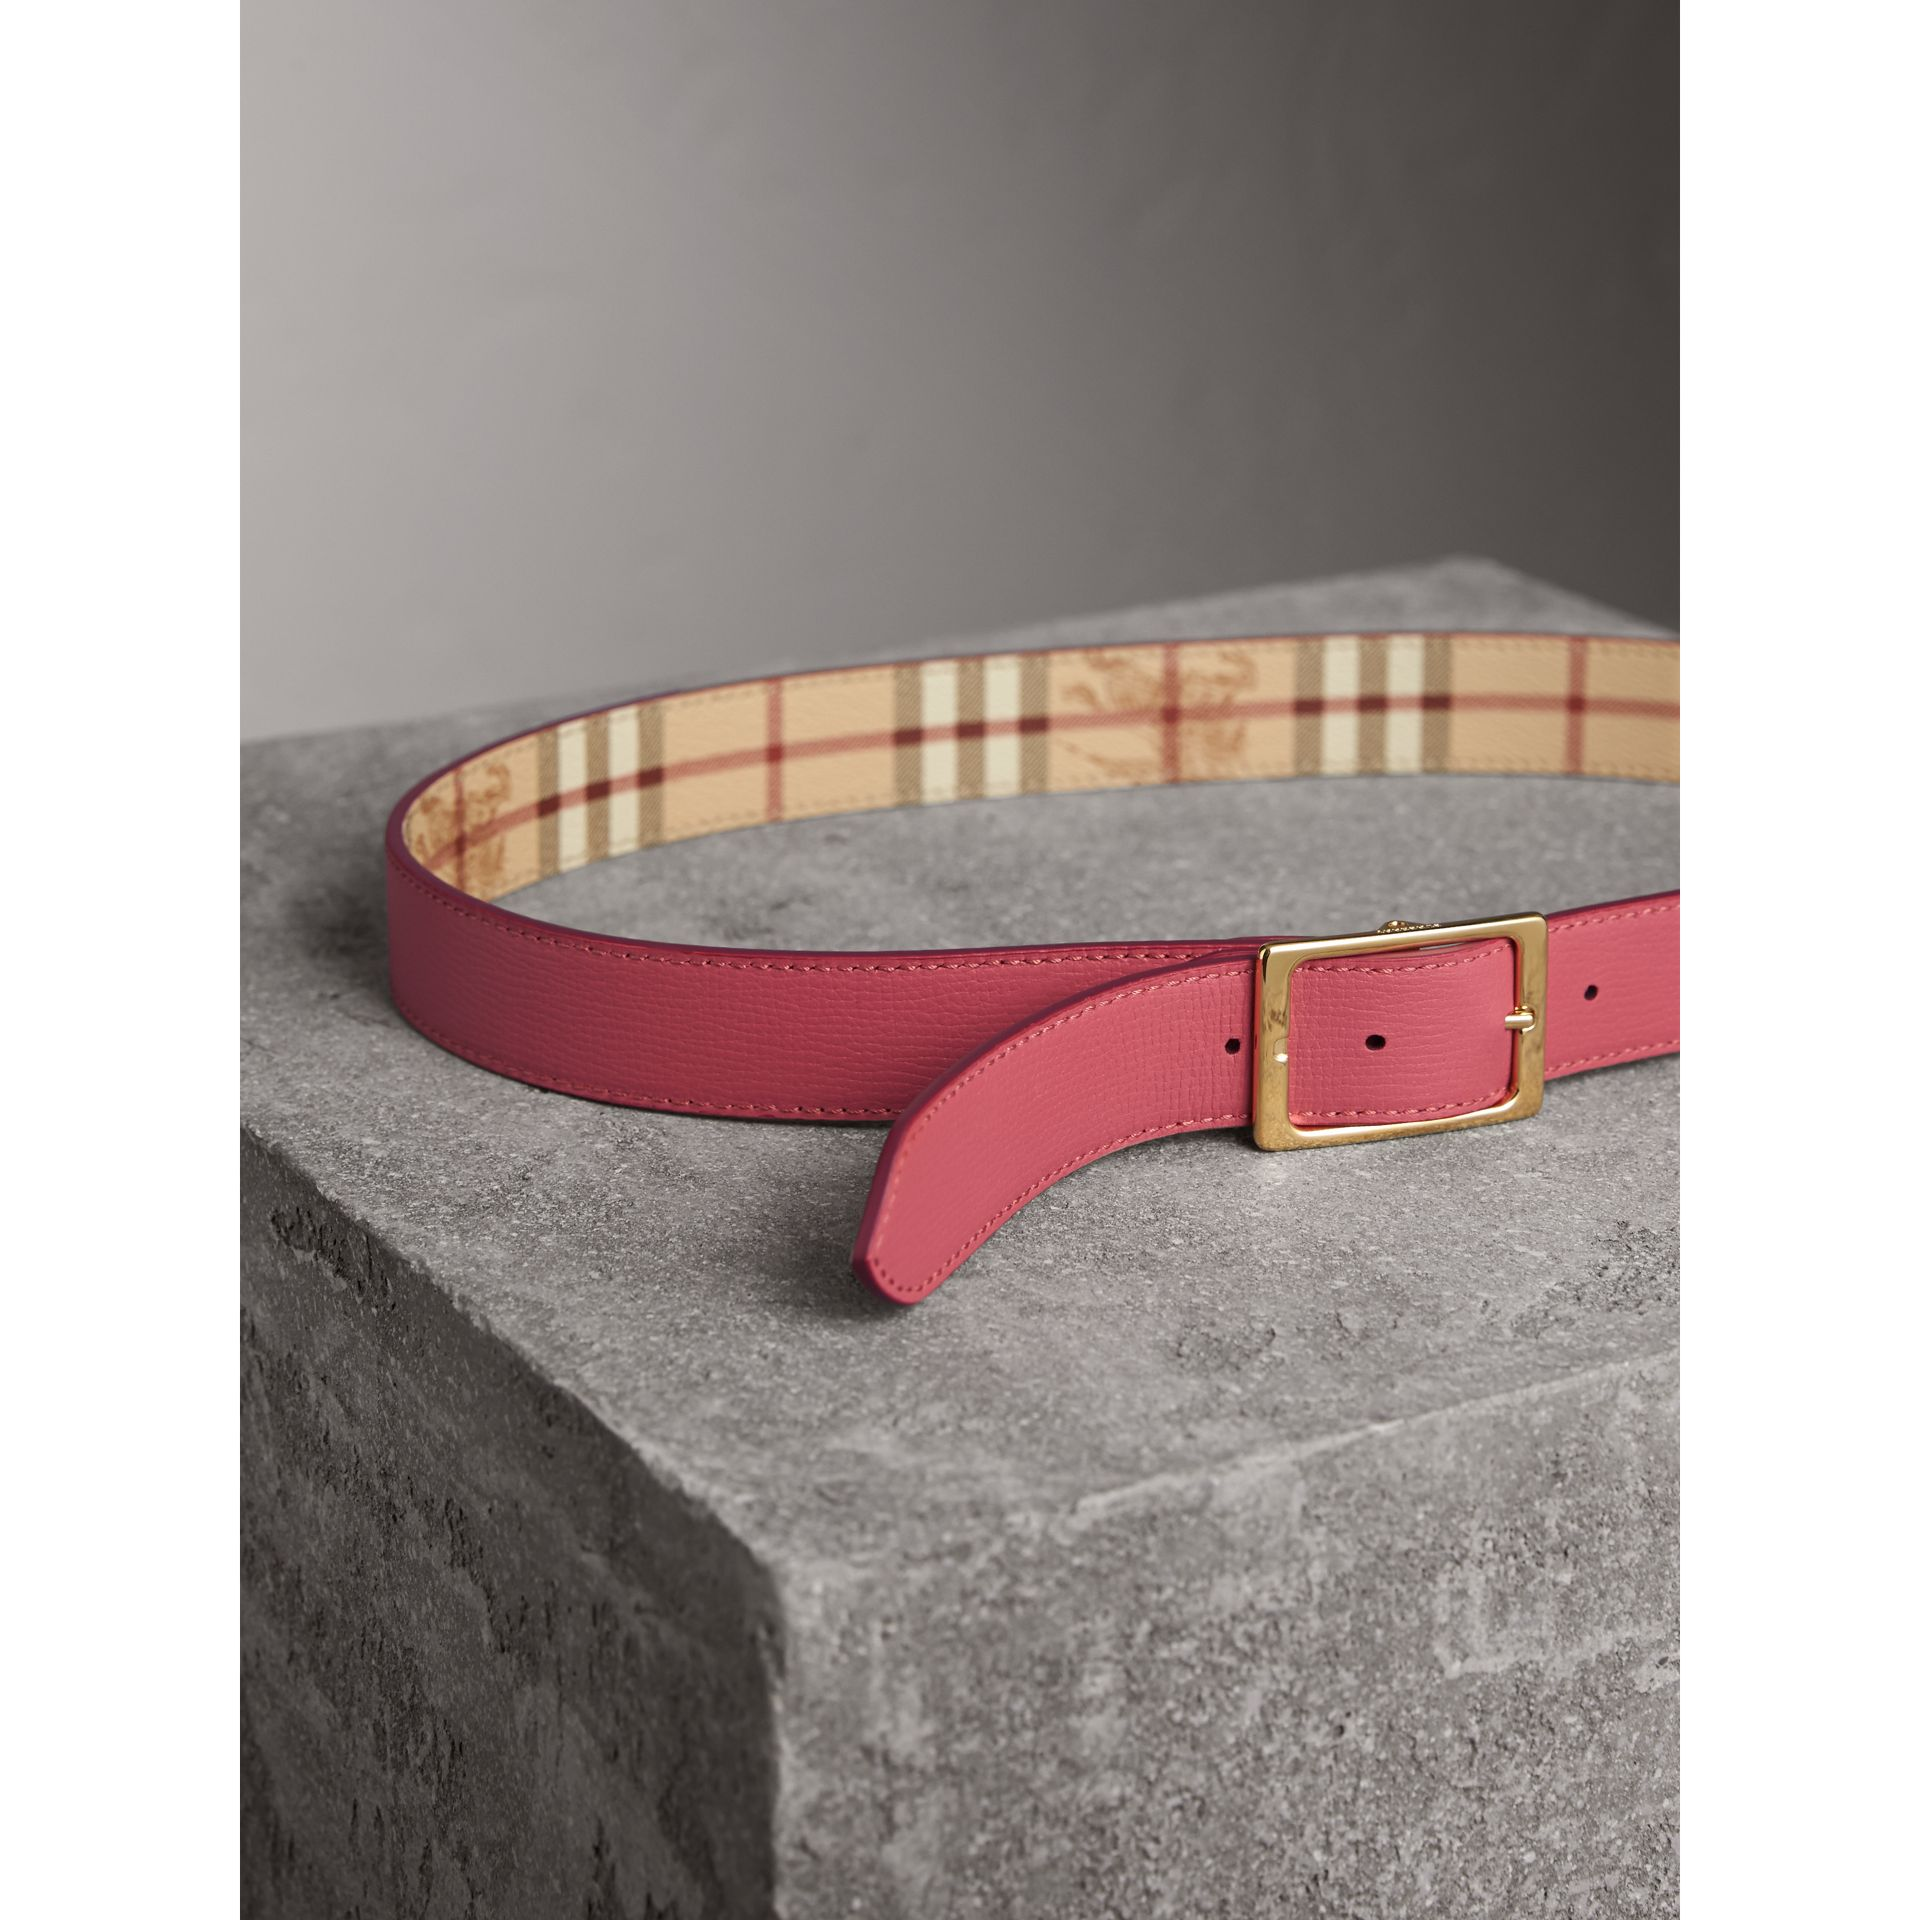 Riveted Reversible Check and Leather Belt in Plum Pink - Women | Burberry United States - gallery image 6